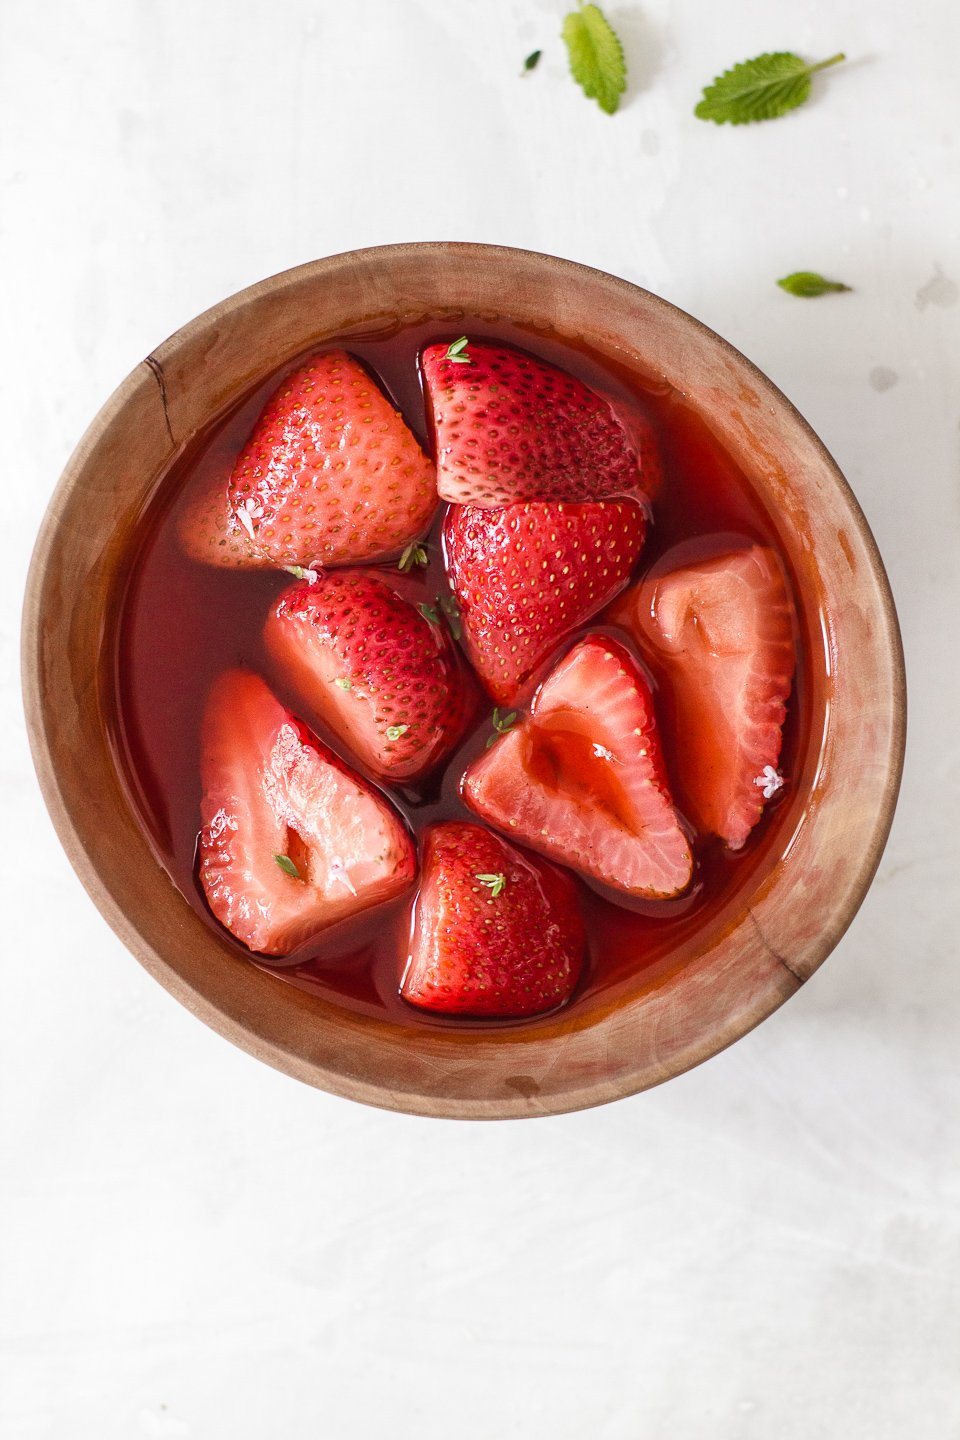 Apple Cider Rose Poached Strawberries